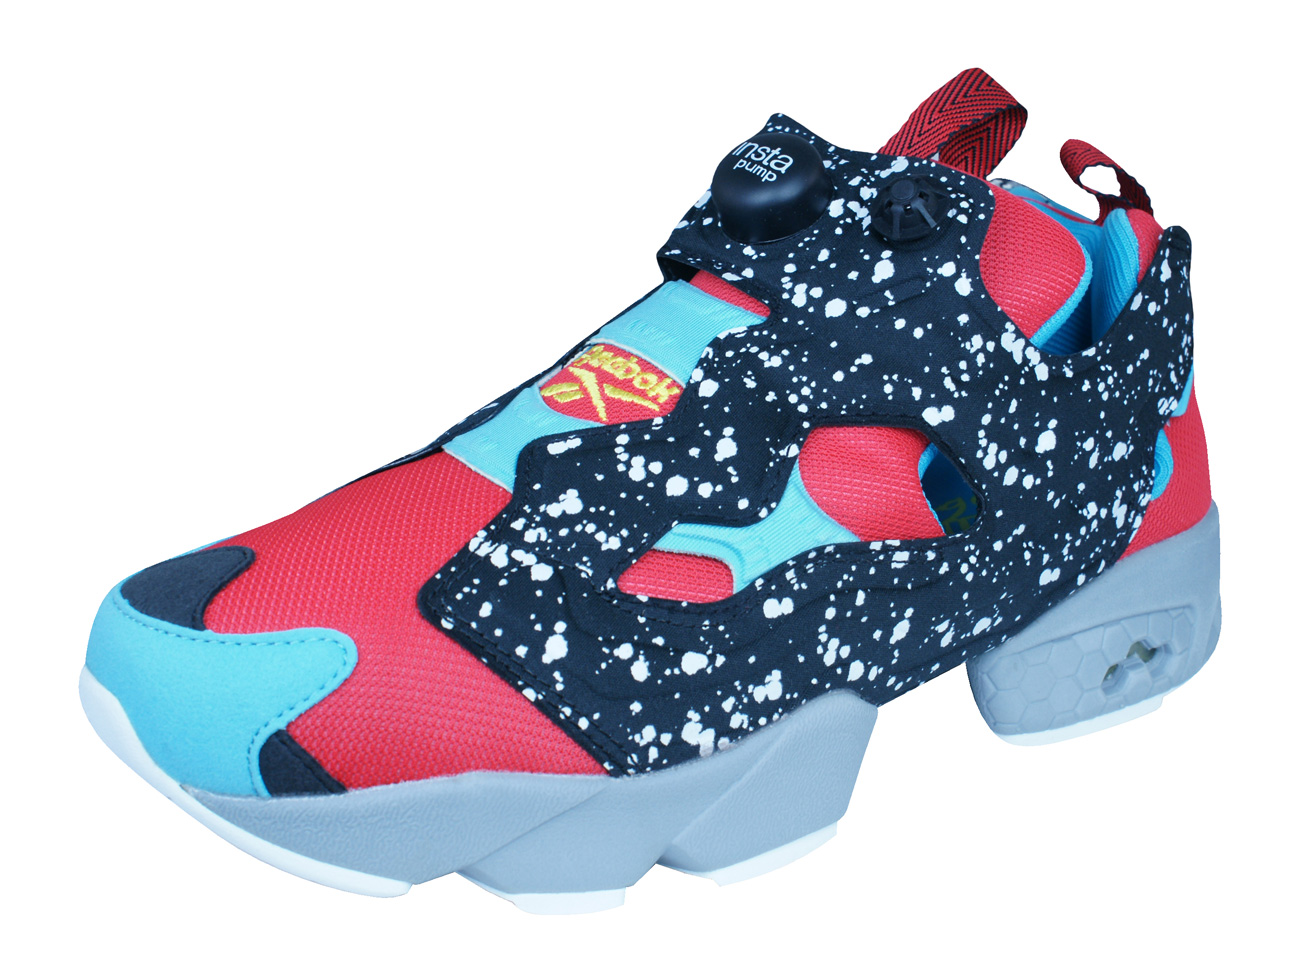 1316655e4168b4 Reebok Instapump Fury SP Mens Trainers   Shoes - Red and Black at ...